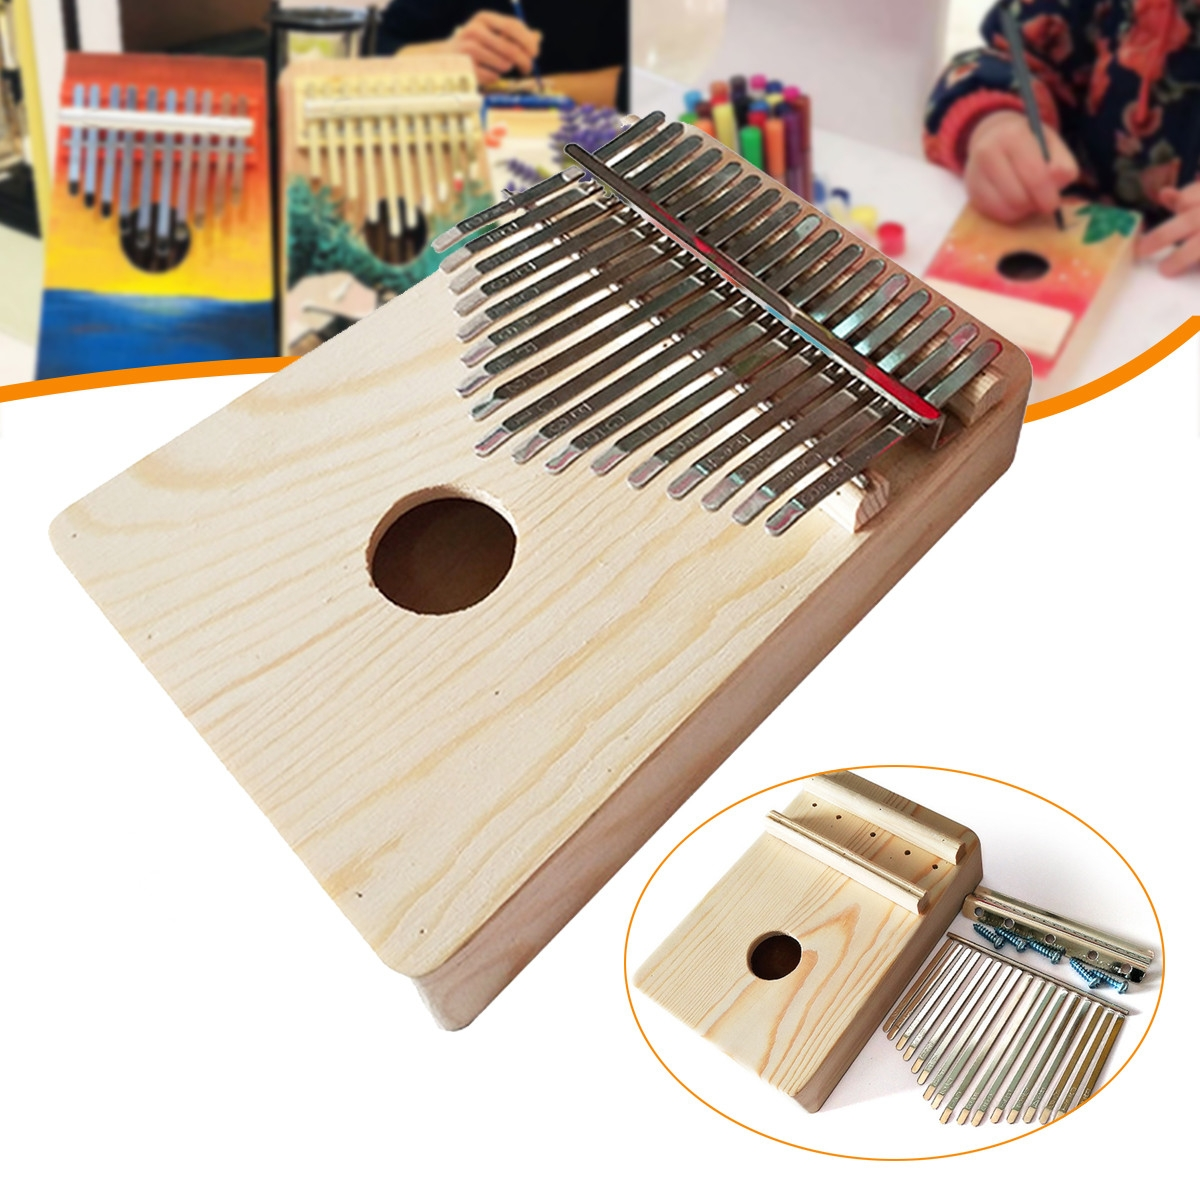 17 Key Mbira DIY Kit Finger Thumb Piano for Handwork Painting Musical Instrument